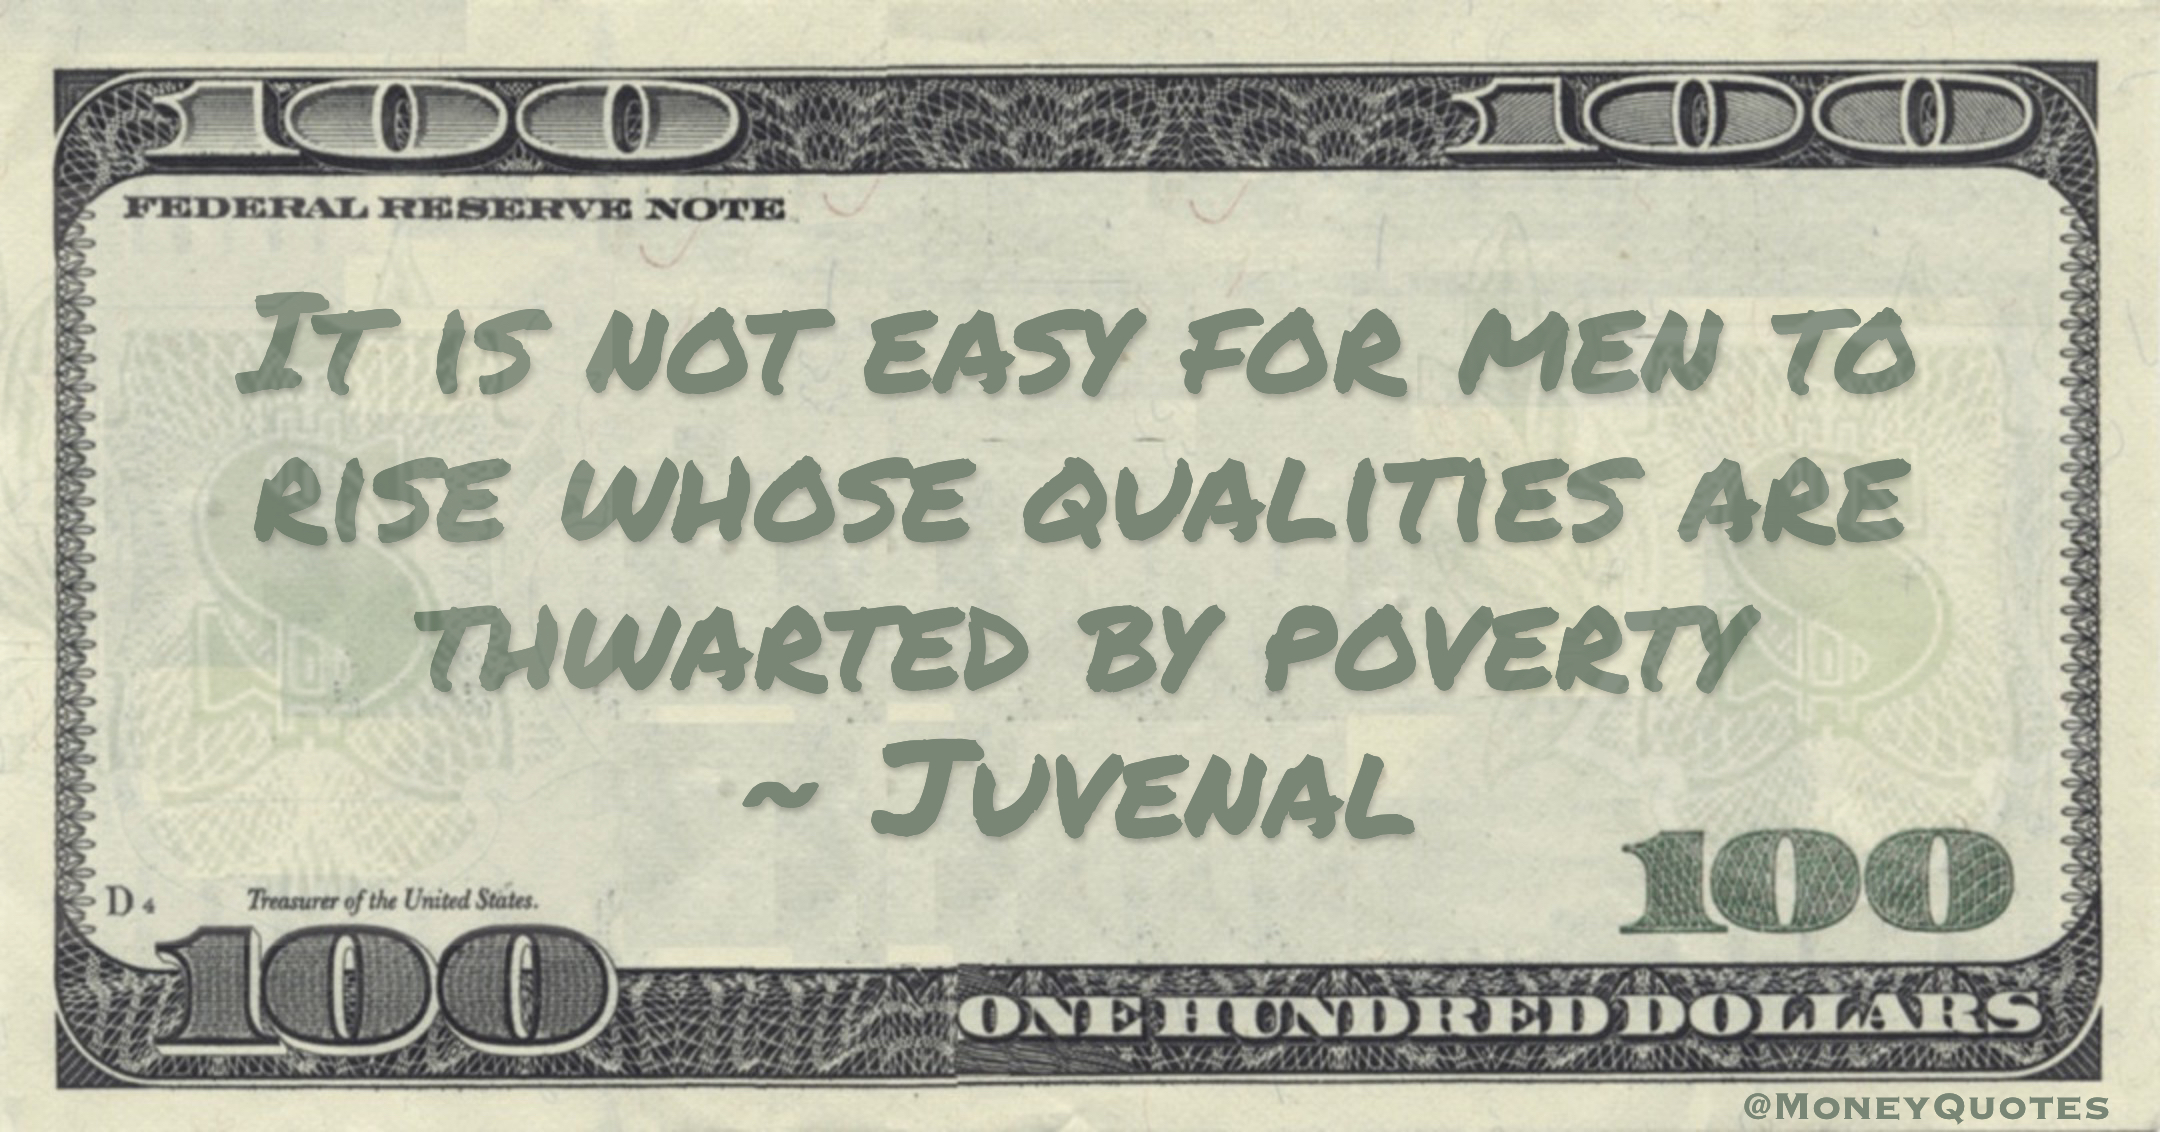 It is not easy for men to rise whose qualities are thwarted by poverty Quote